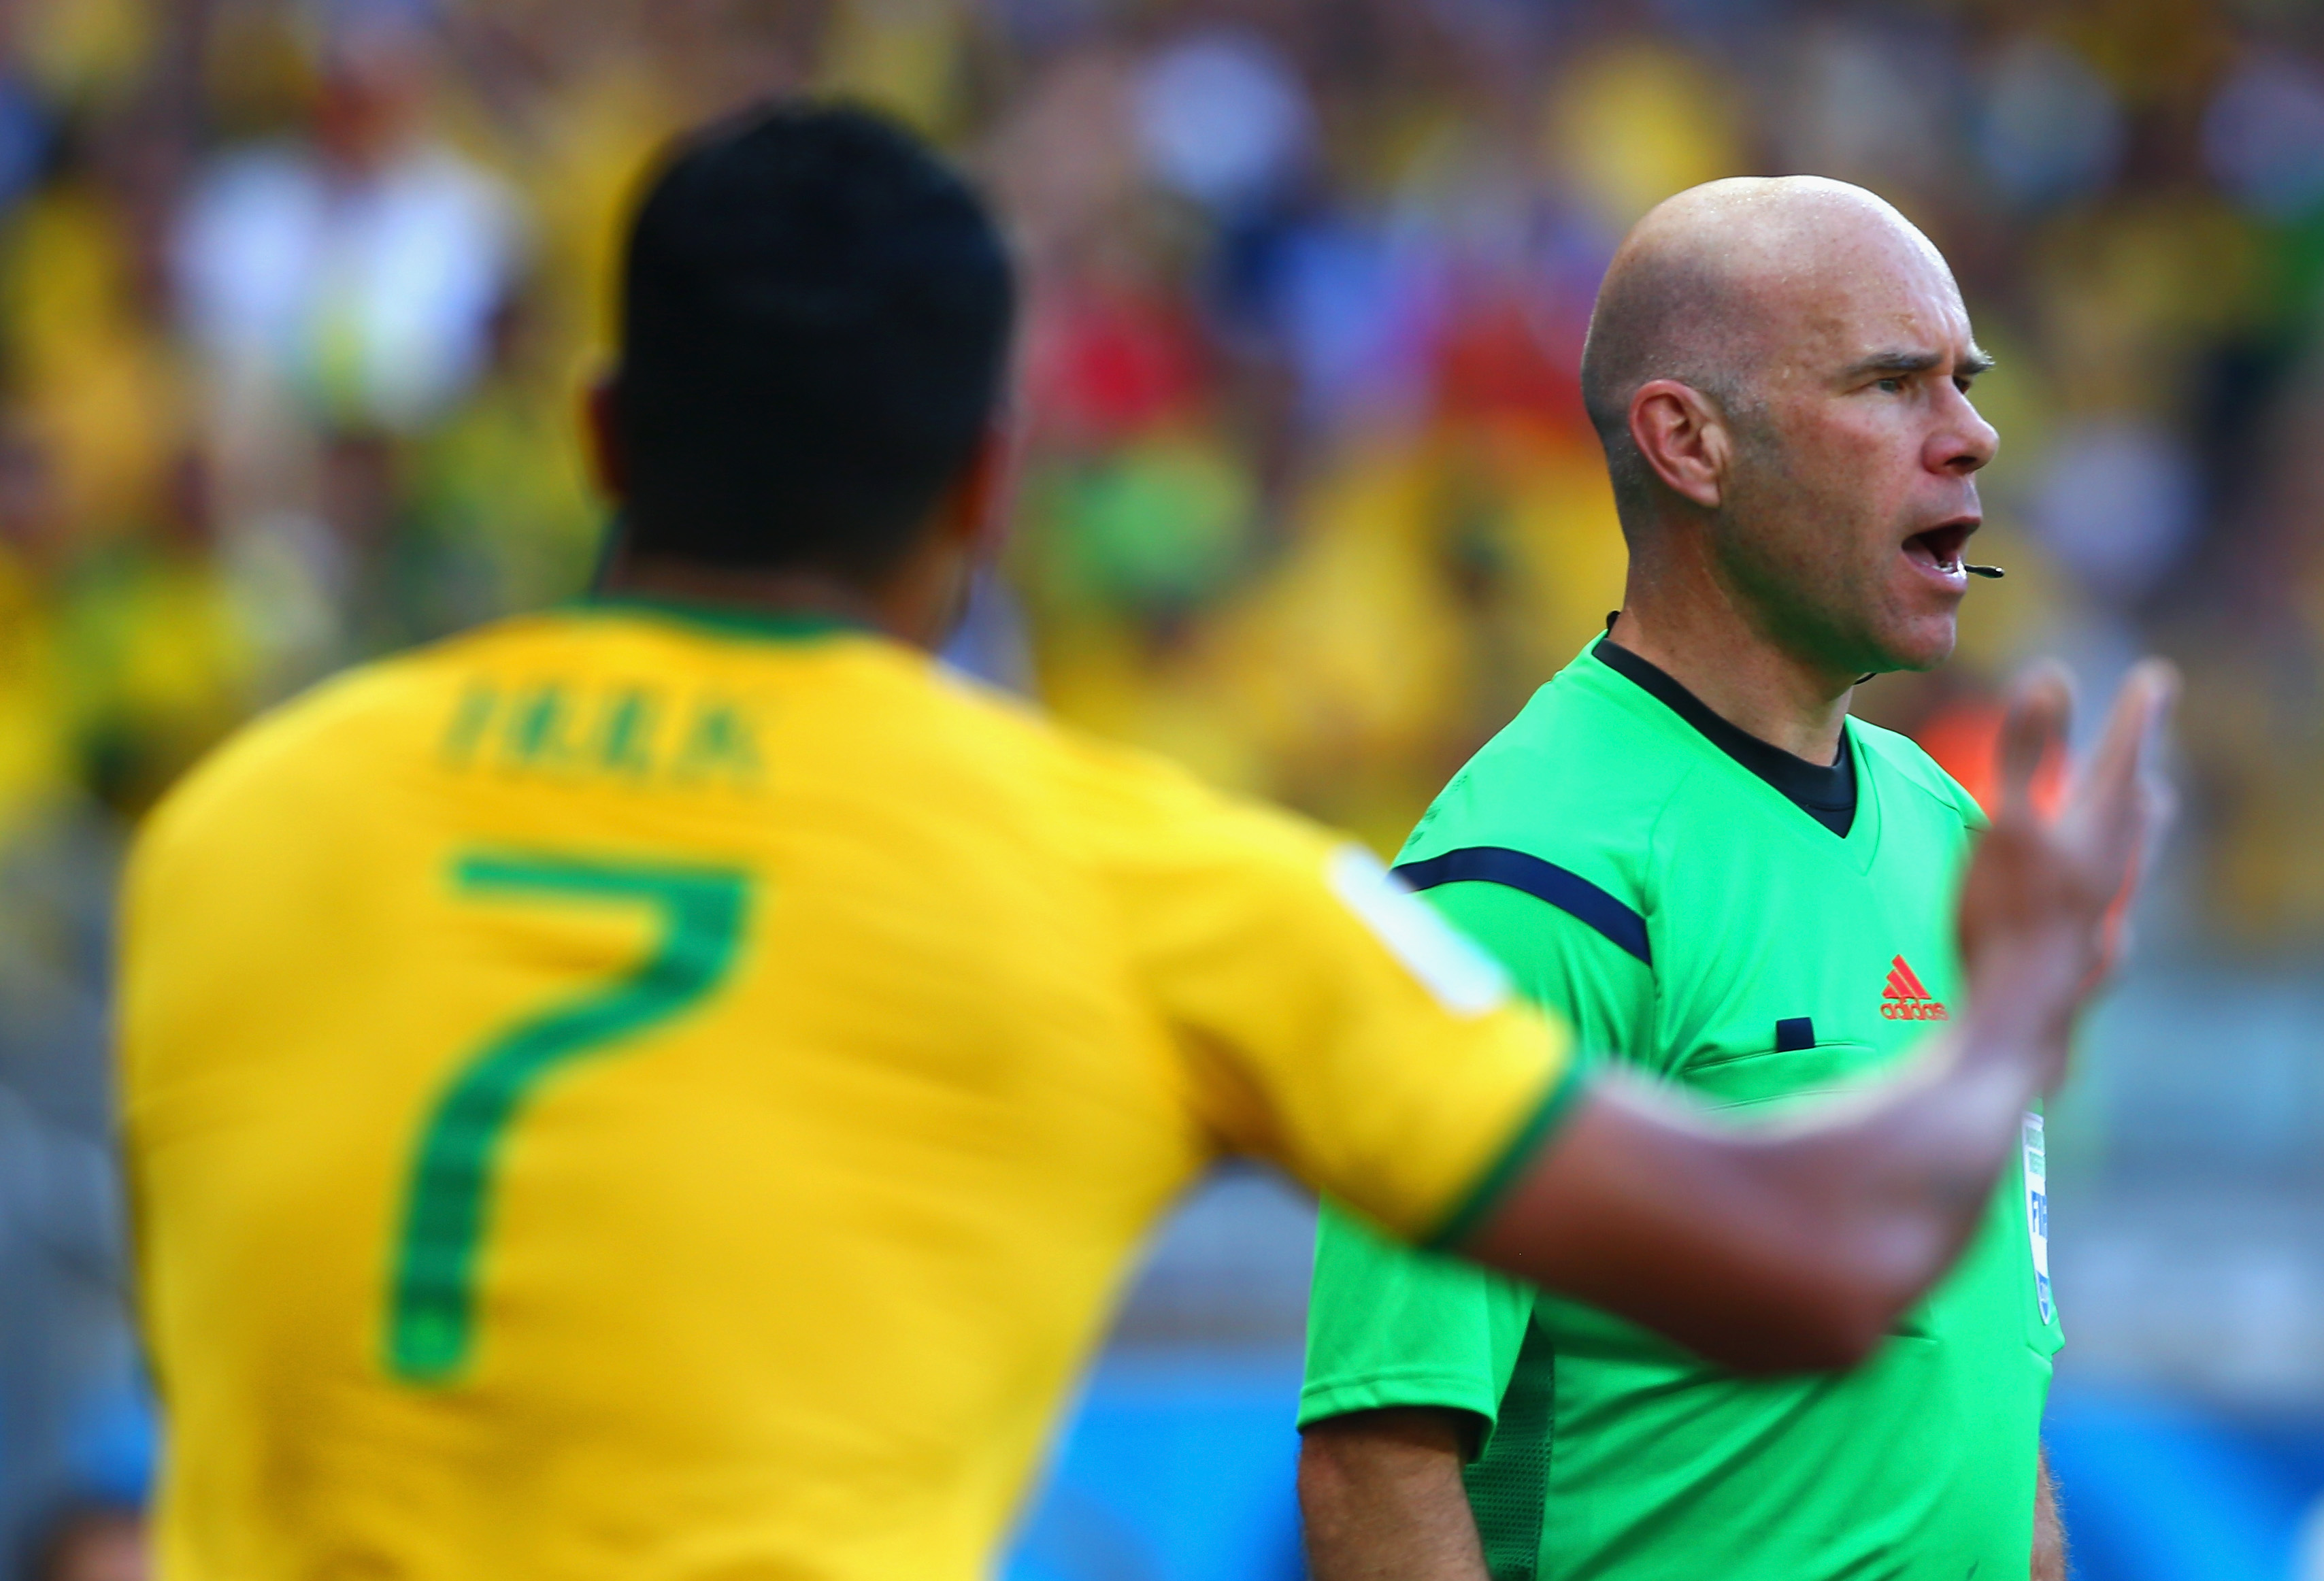 Hulk of Brazil appeals to assistant referee Michael Mullarkey after a disallowed goal and yellow card due to a hand ball during the 2014 FIFA World Cup on June 28, 2014